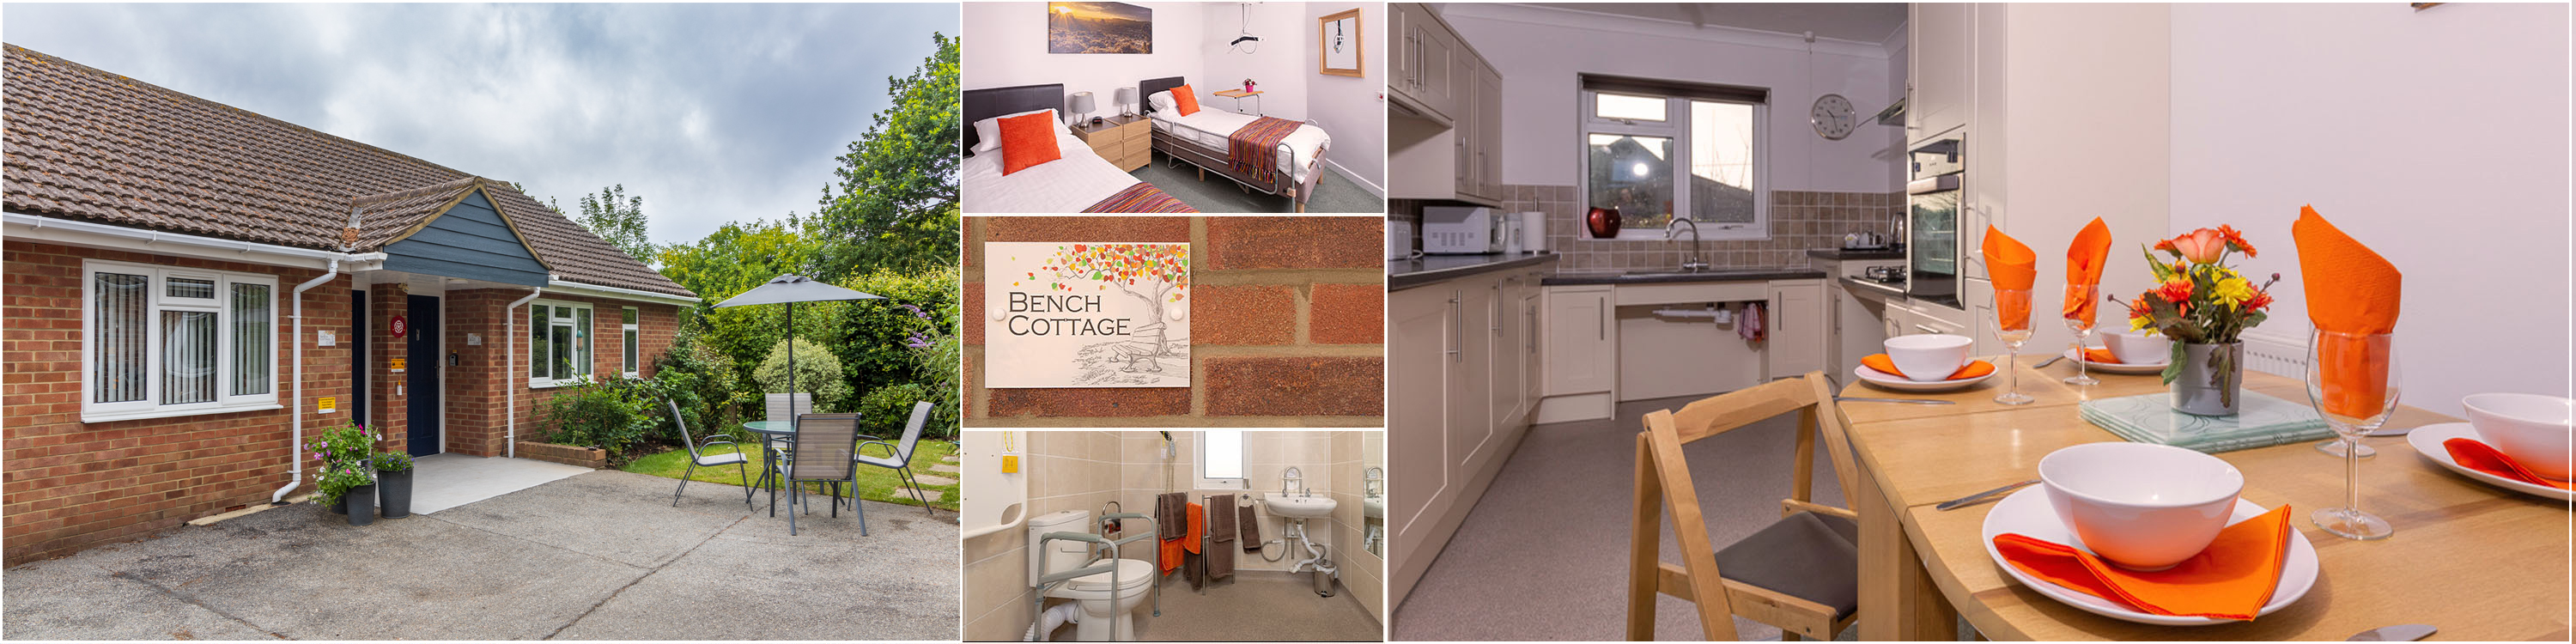 Bench Cottage - New Forest Accessible Accommodation